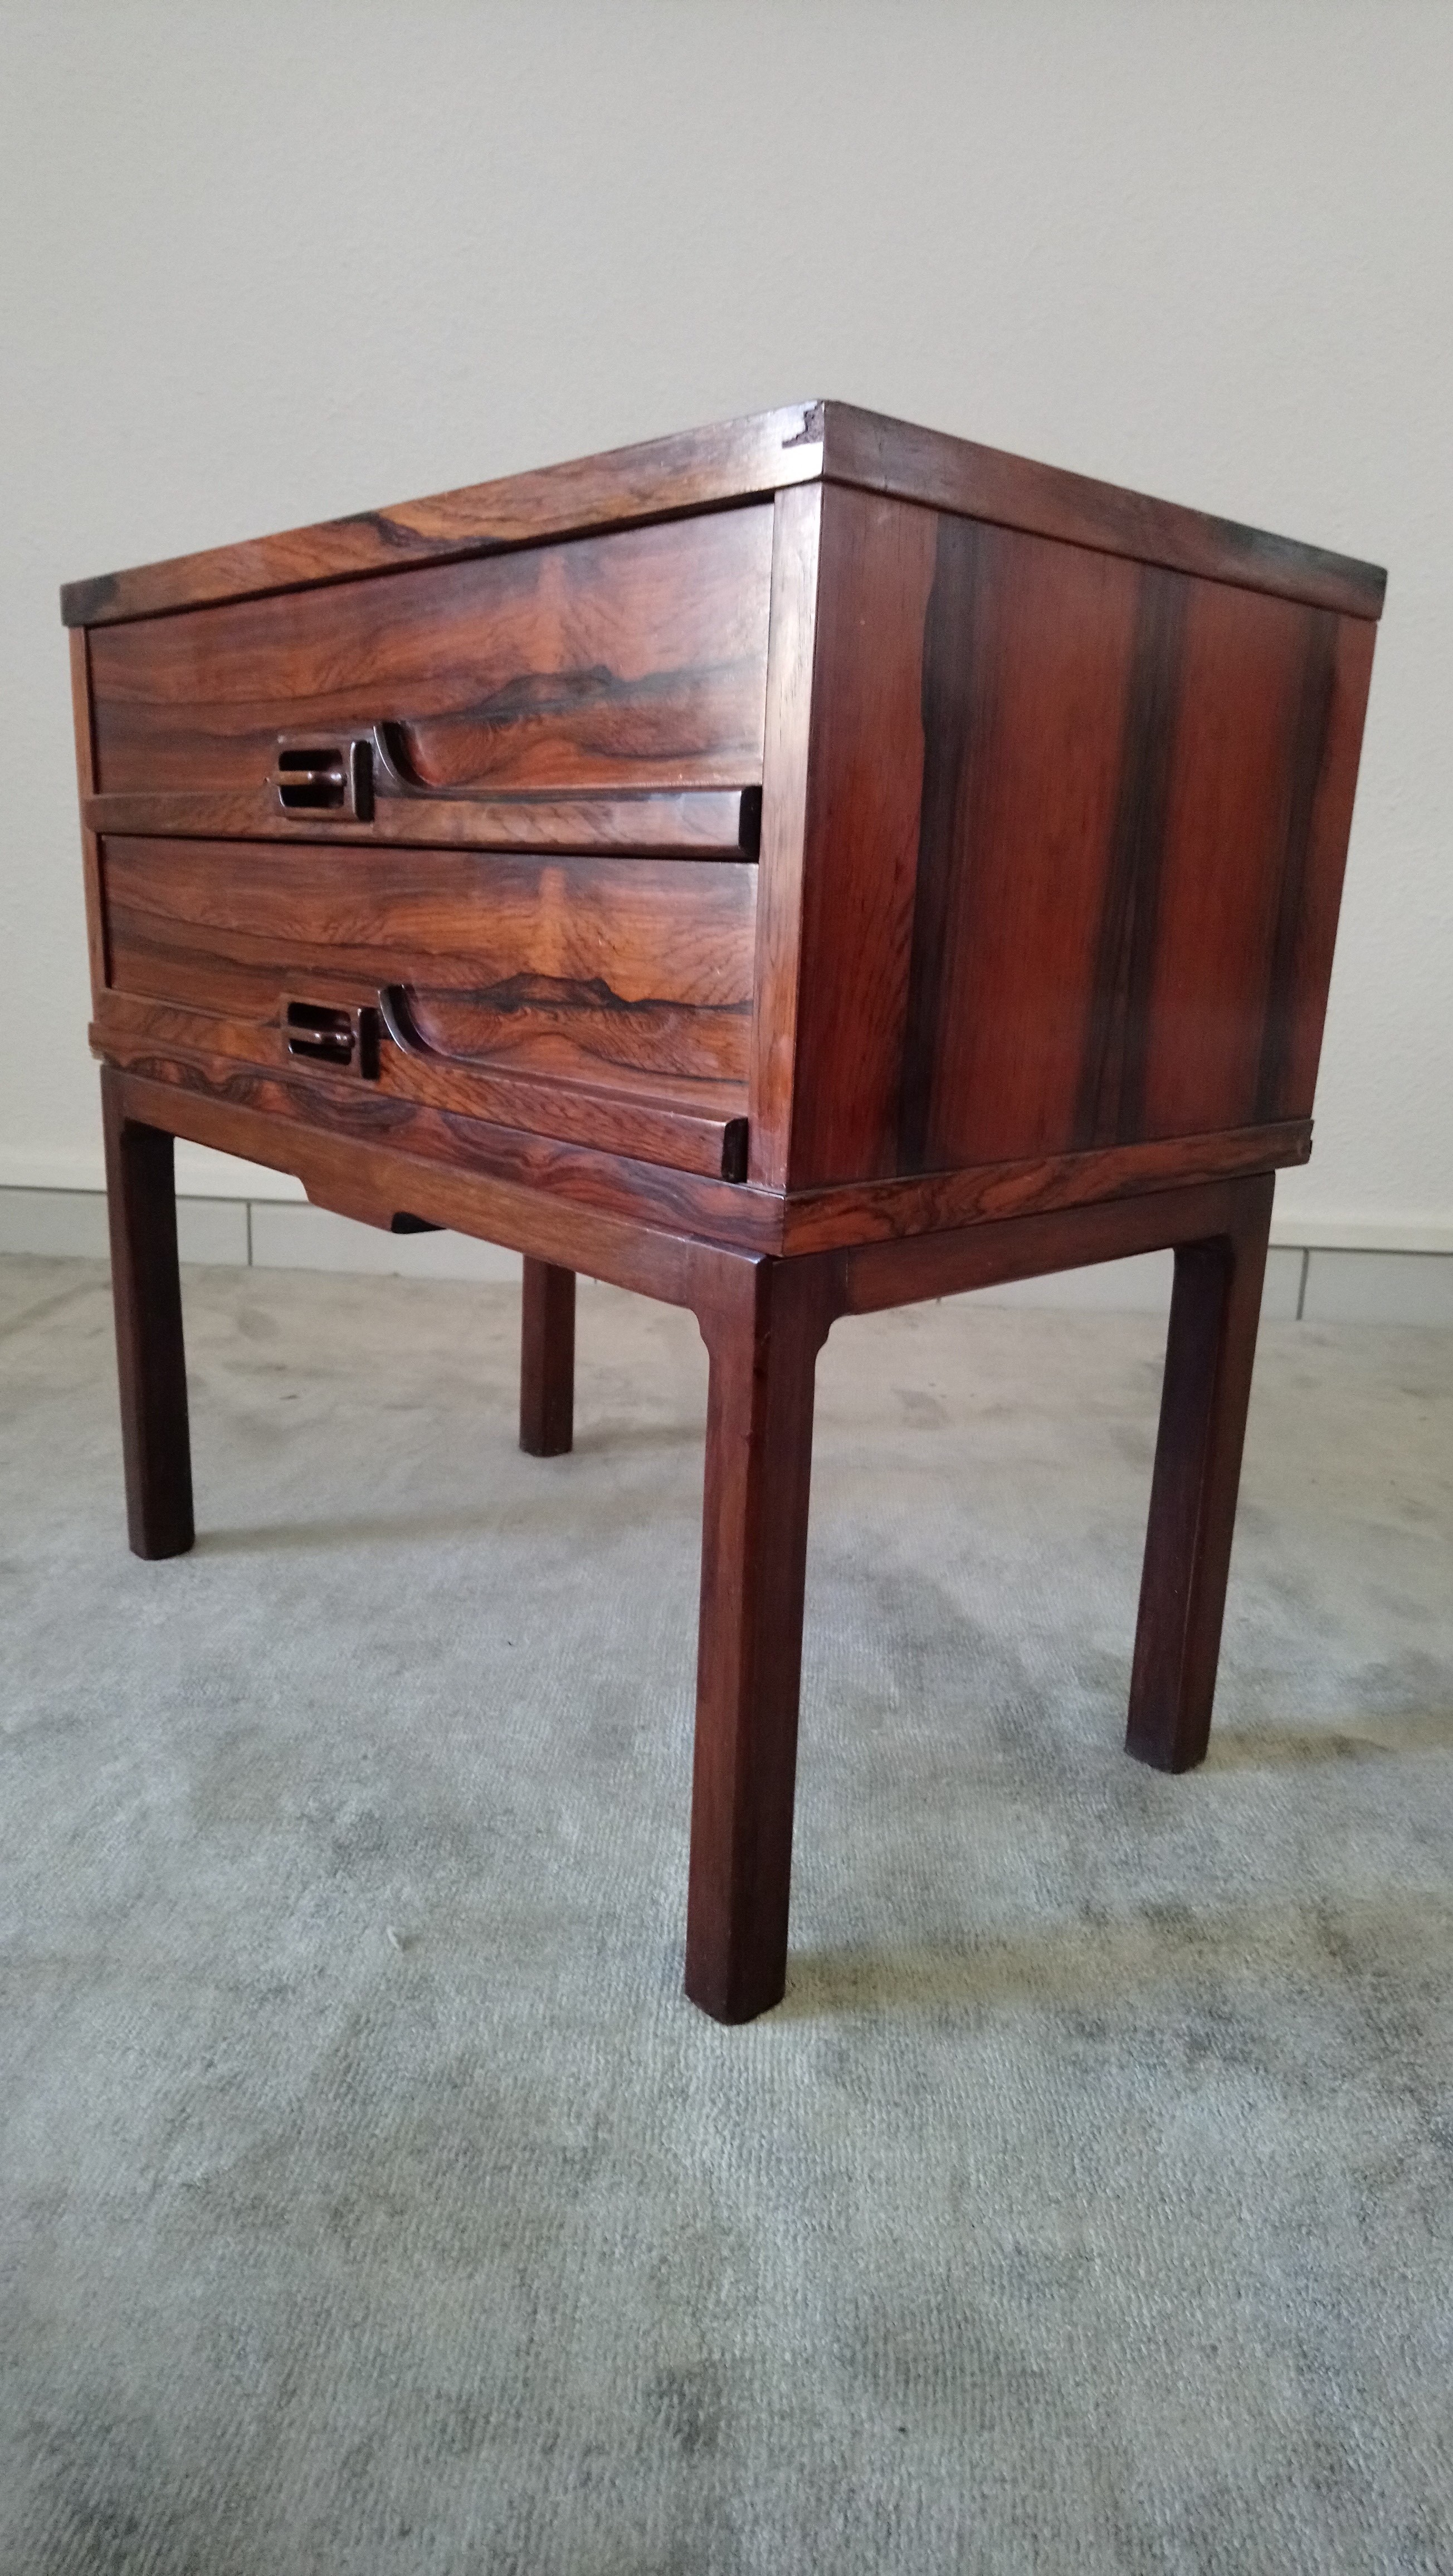 Retro Style Container Bedside Table: Pair Of Vintage Bedside Tables In Rio Rosewood